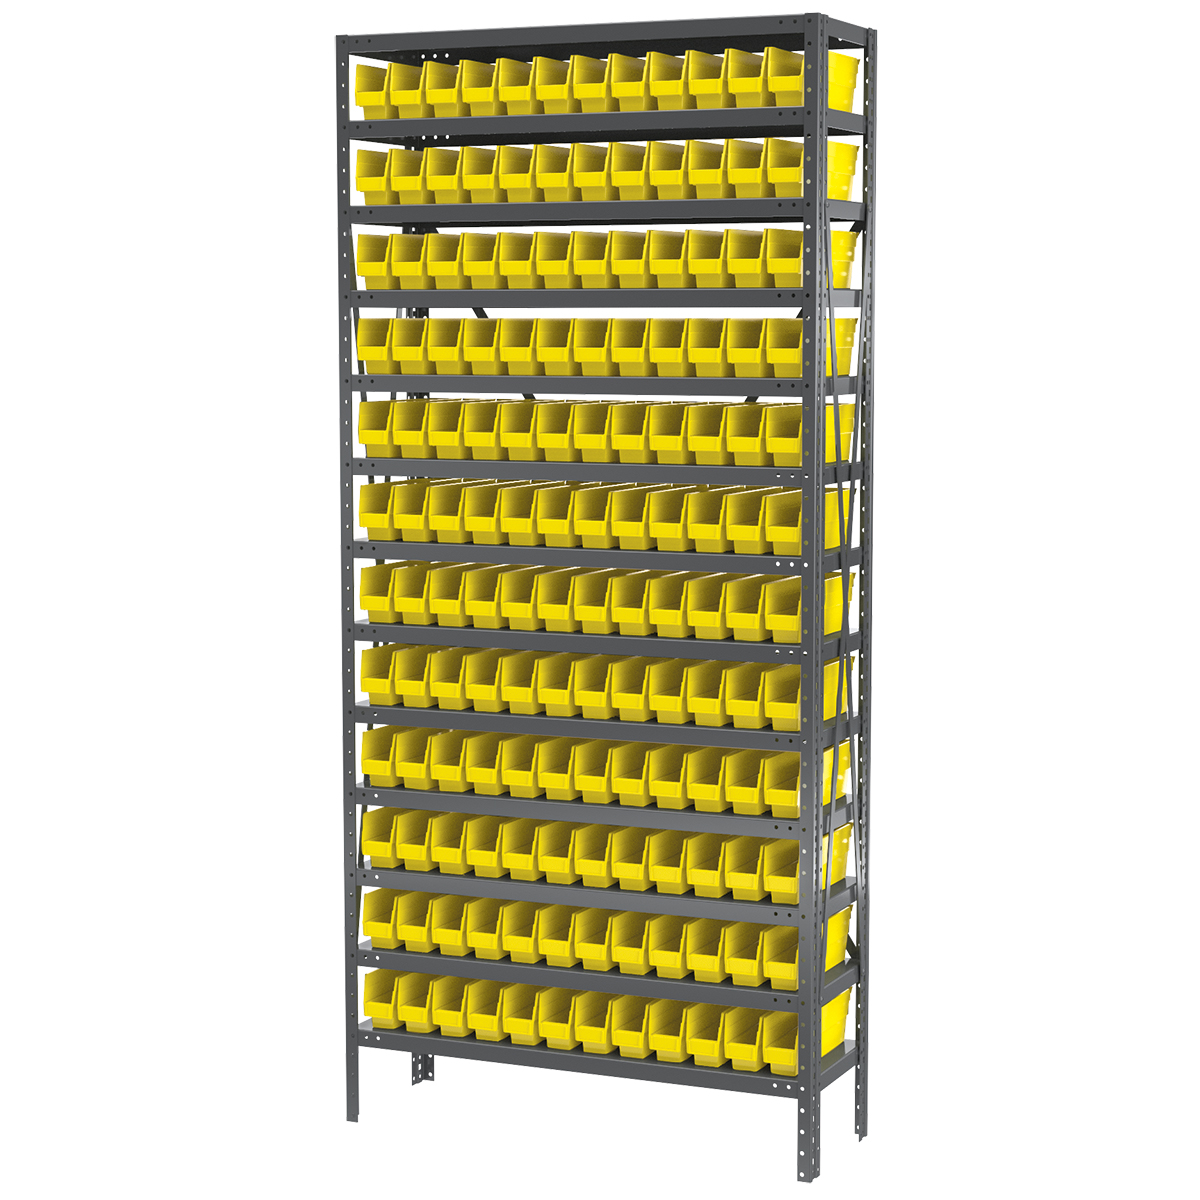 Steel Shelving Kit, 12x36x79, 144 Bins, Gray/Yellow (AS1279110Y).  This item sold in carton quantities of 1.